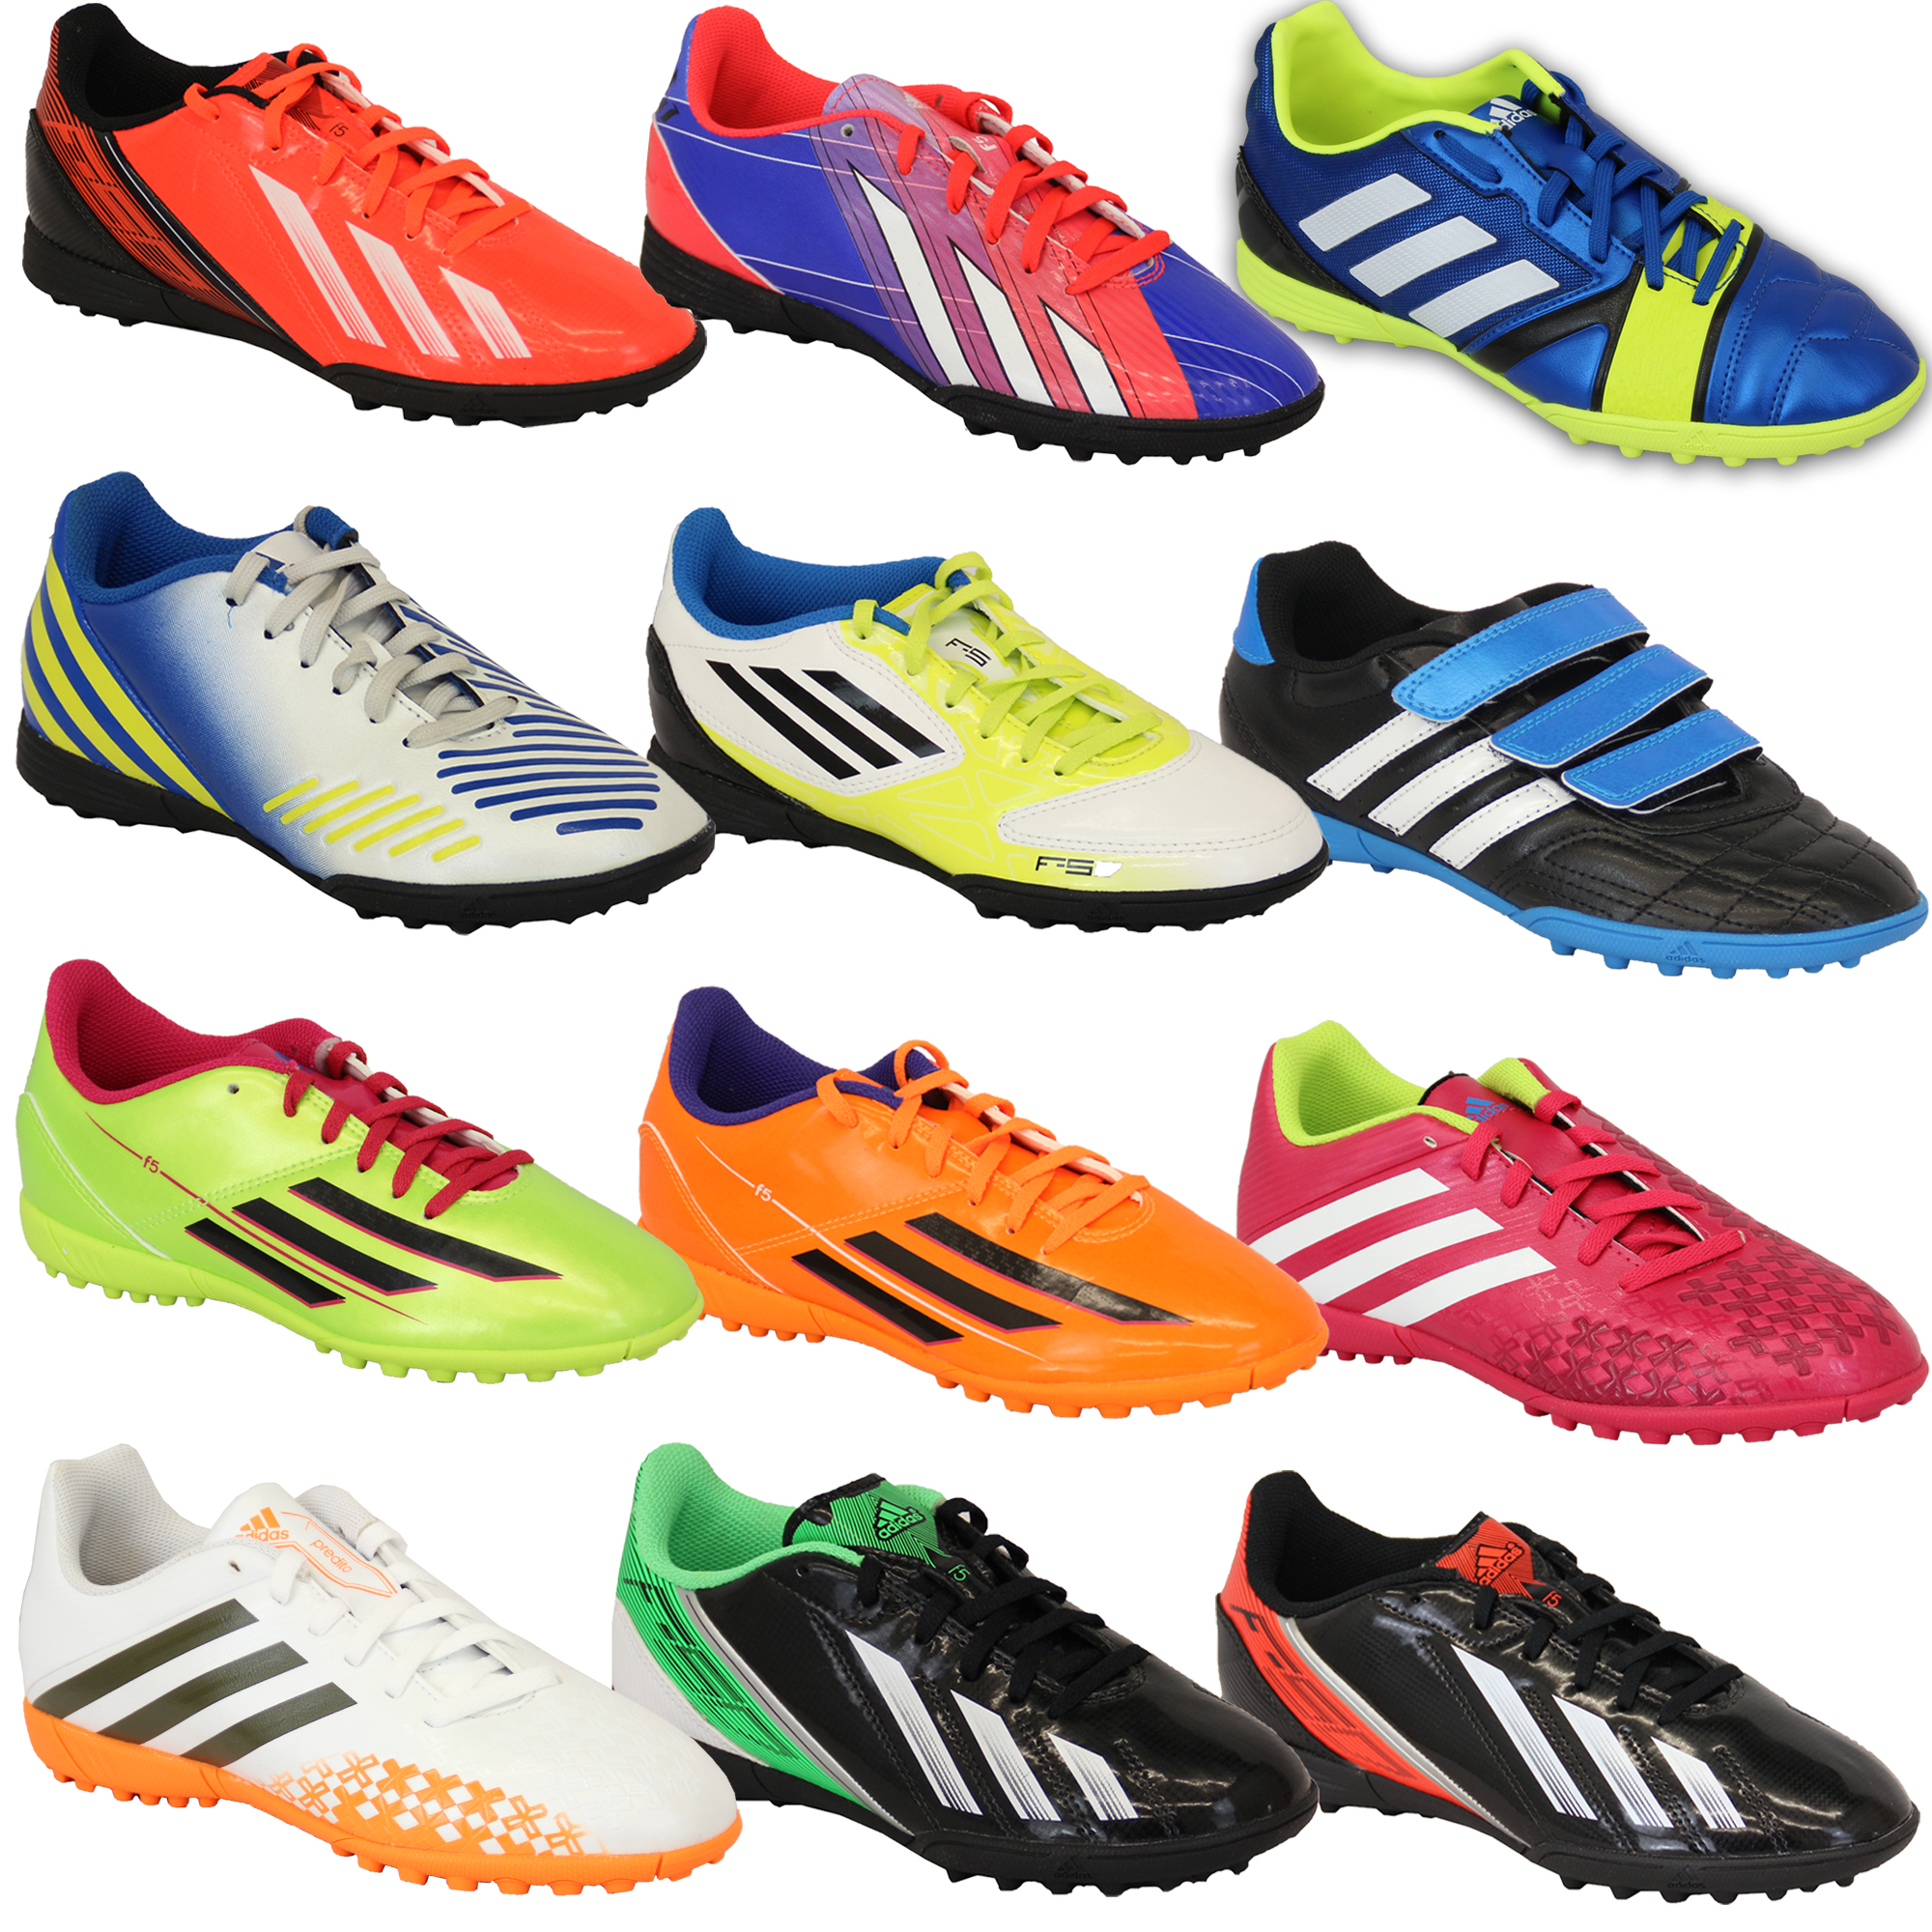 8e7bf204c6a Boys ADIDAS Trainers Kids Football Soccer Astro Turf Shoes Lace Up ...